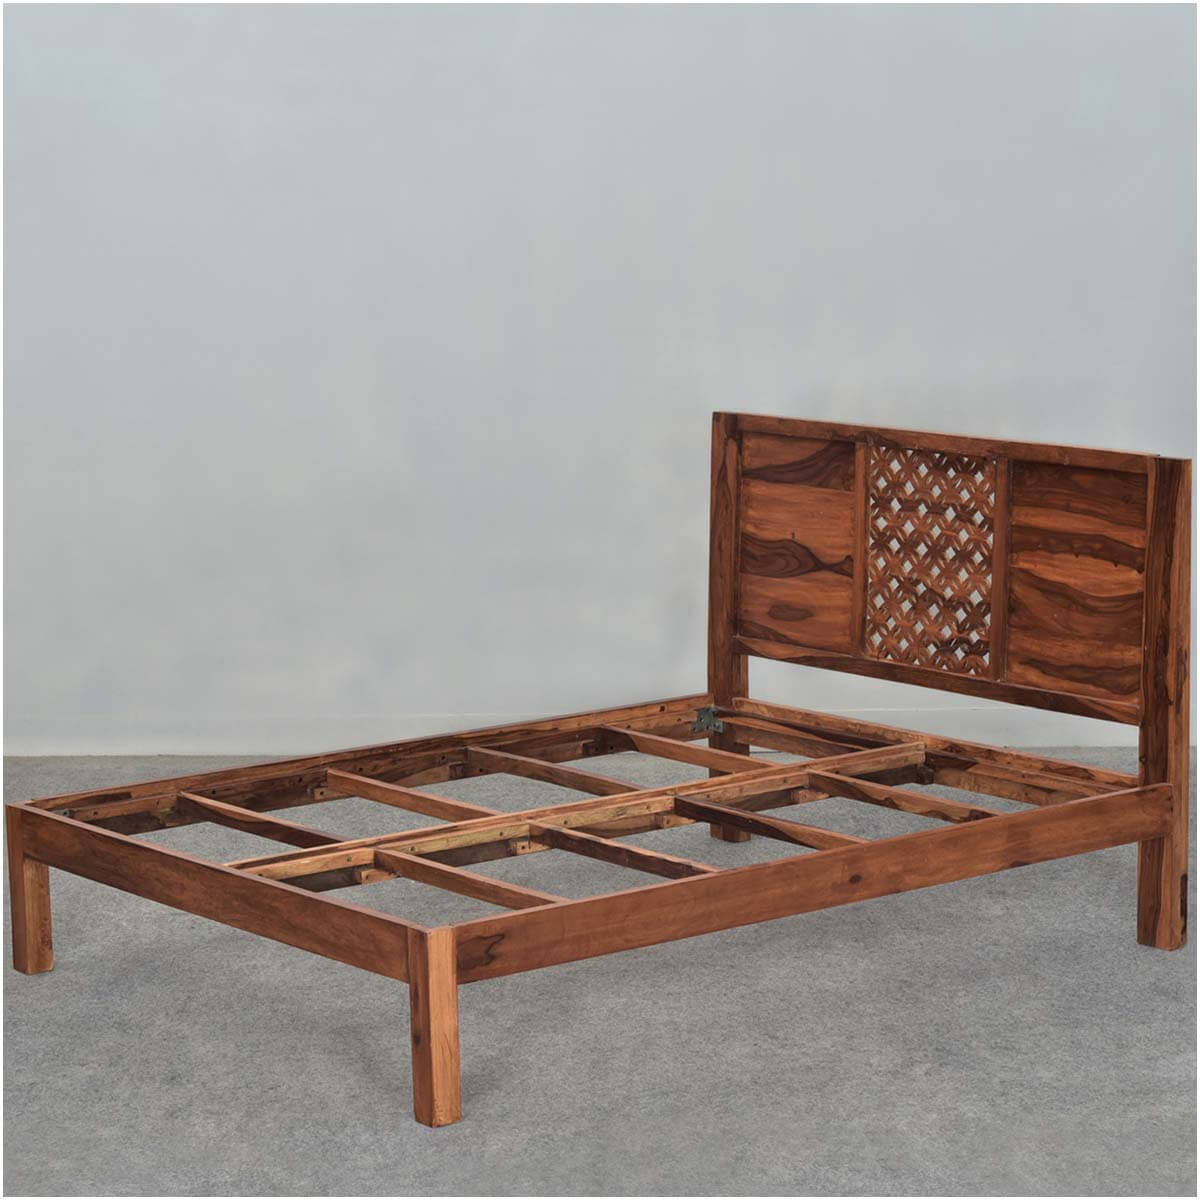 Diamond lattice solid wood rustic full size platform bed frame Rustic bed frames